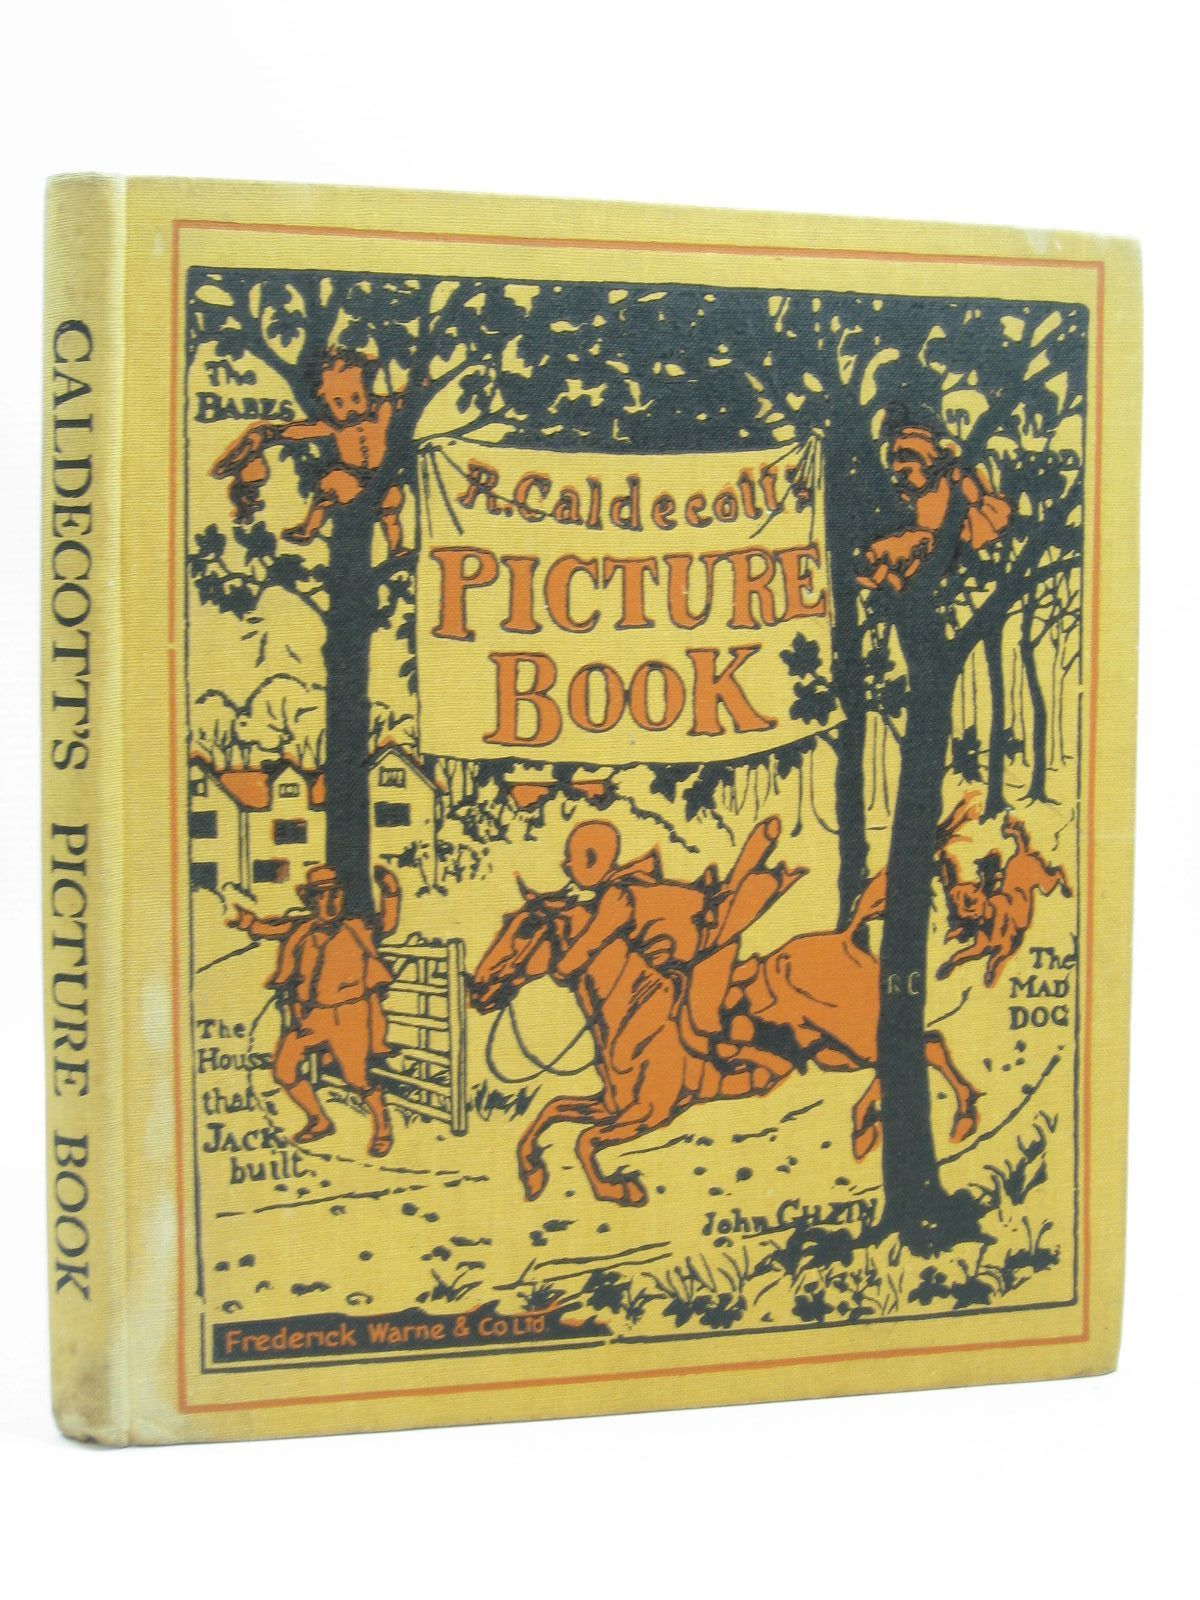 Photo of R. CALDECOTT'S PICTURE BOOK No. 1 illustrated by Caldecott, Randolph published by Frederick Warne & Co Ltd. (STOCK CODE: 1314508)  for sale by Stella & Rose's Books